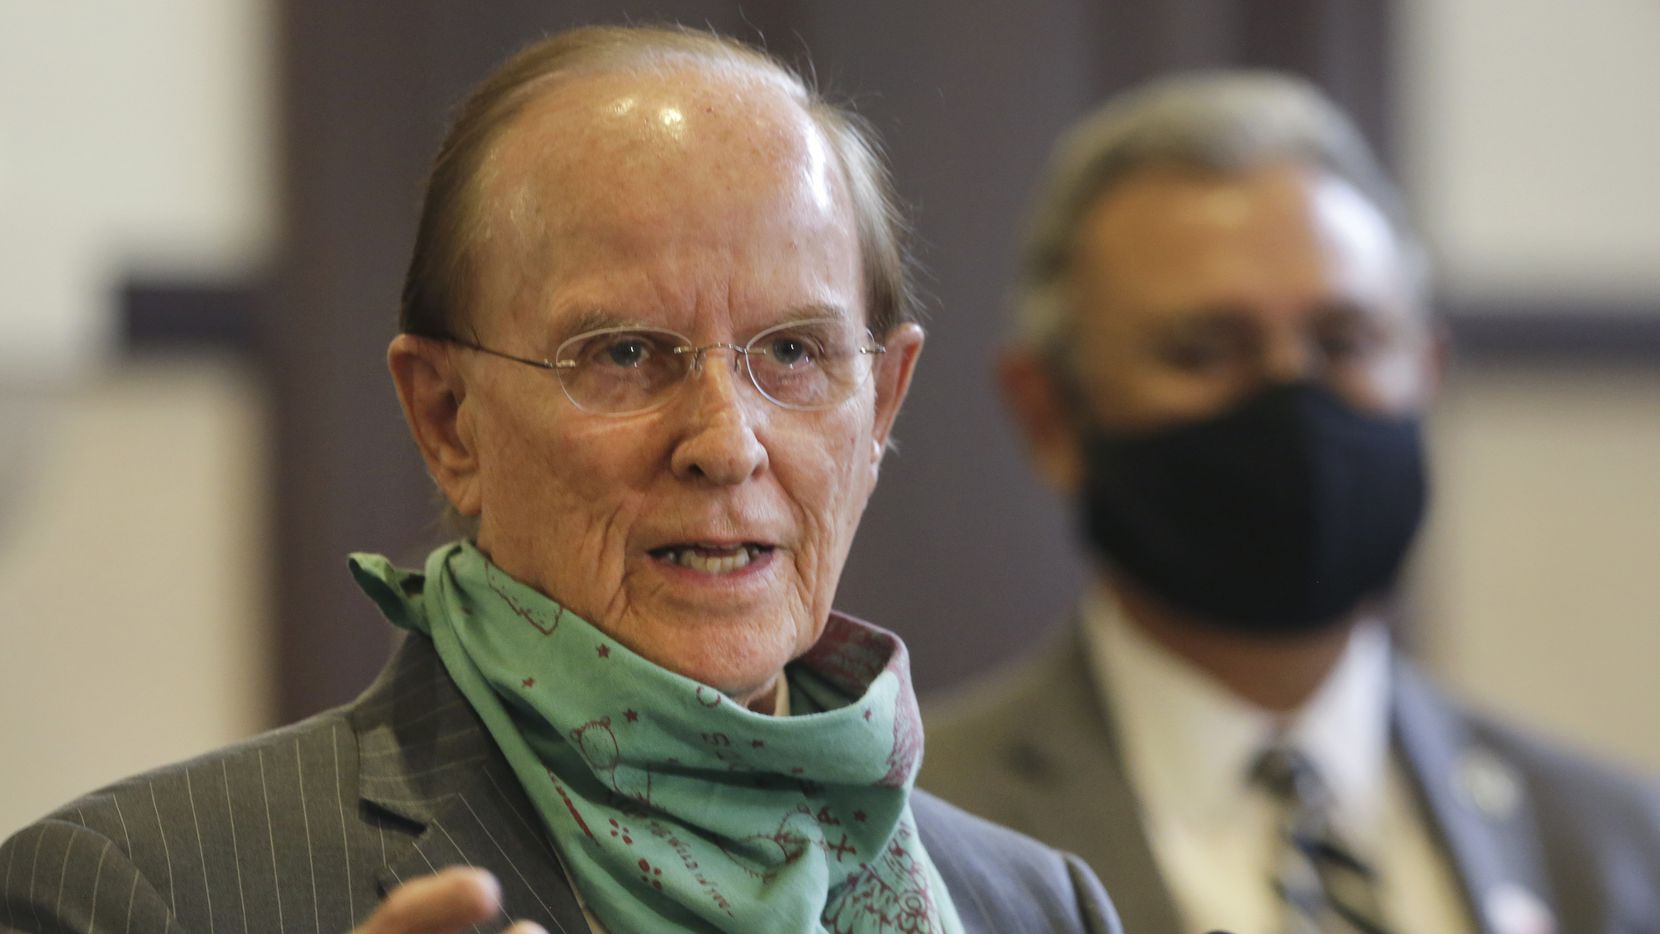 Bexar County Judge Nelson Wolff has cracked the code on how to circumvent Gov. Greg Abbott and require masks to contain coronavirus. On Wednesday, he announced San Antonio-area businesses will be fined if they don't require employees and visitors to wear masks when within six feet of one another.